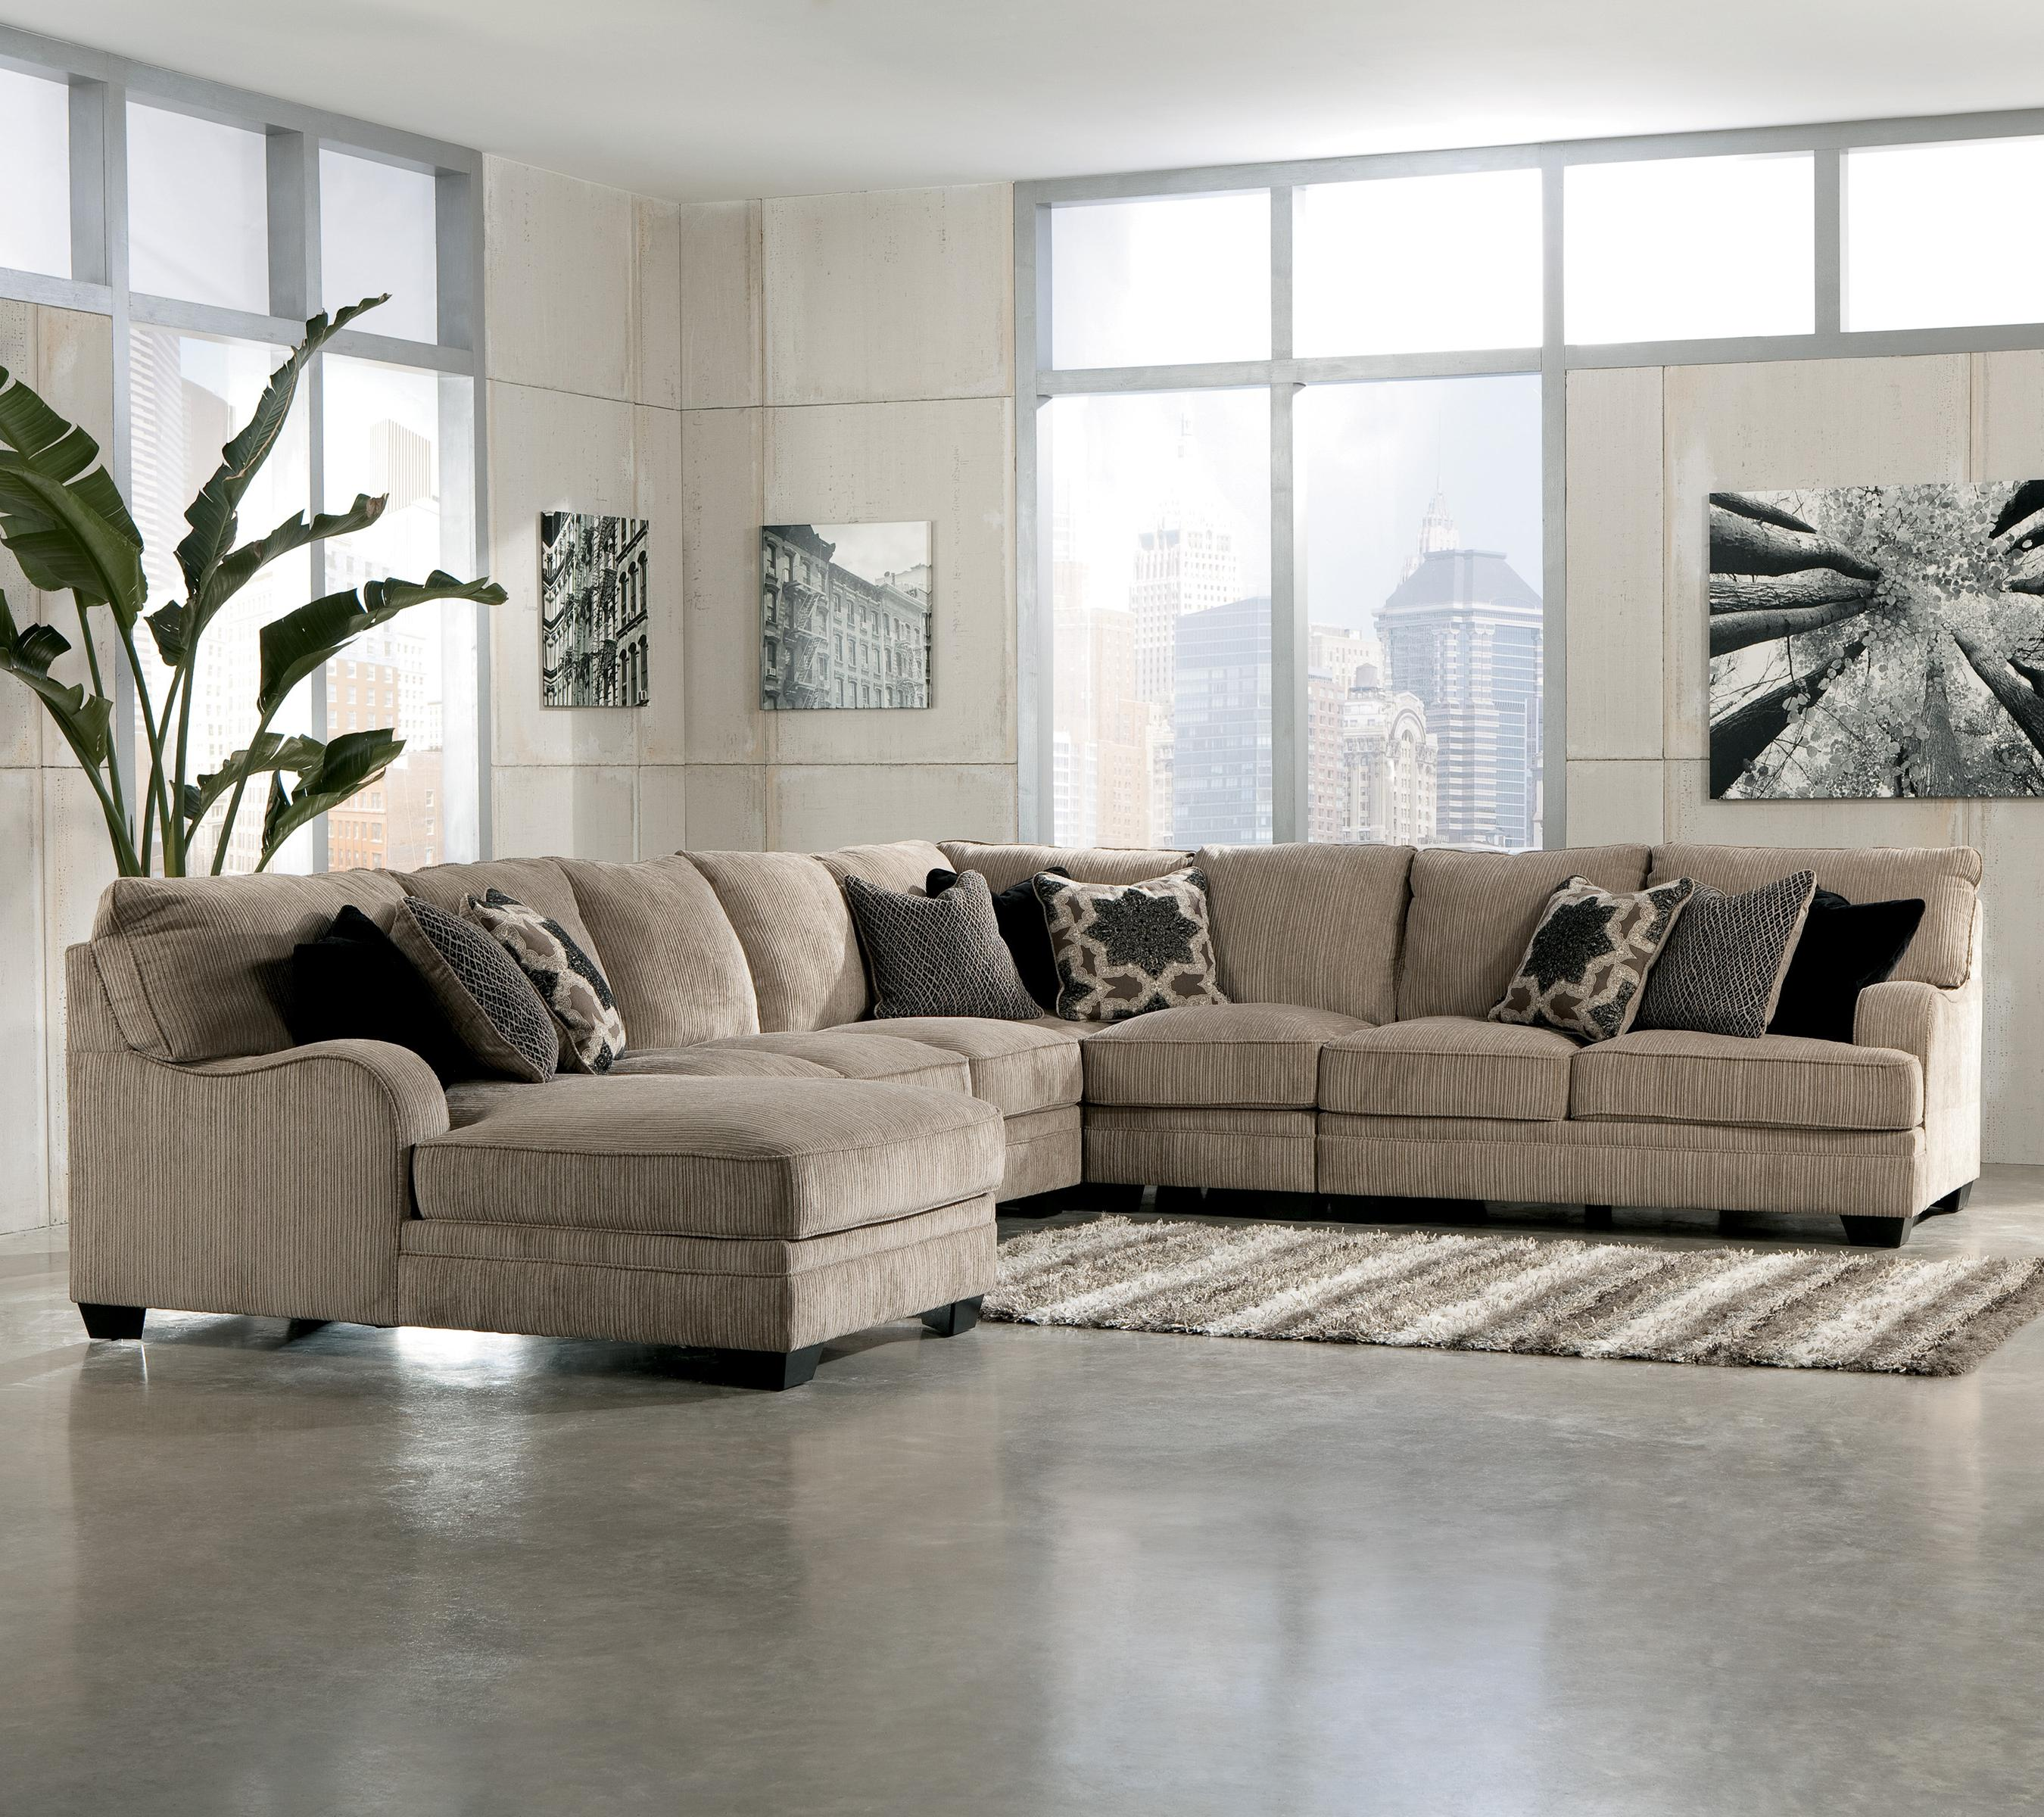 Cheap sectional sofas knoxville tn sofa menzilperde net for Affordable furniture knoxville tn